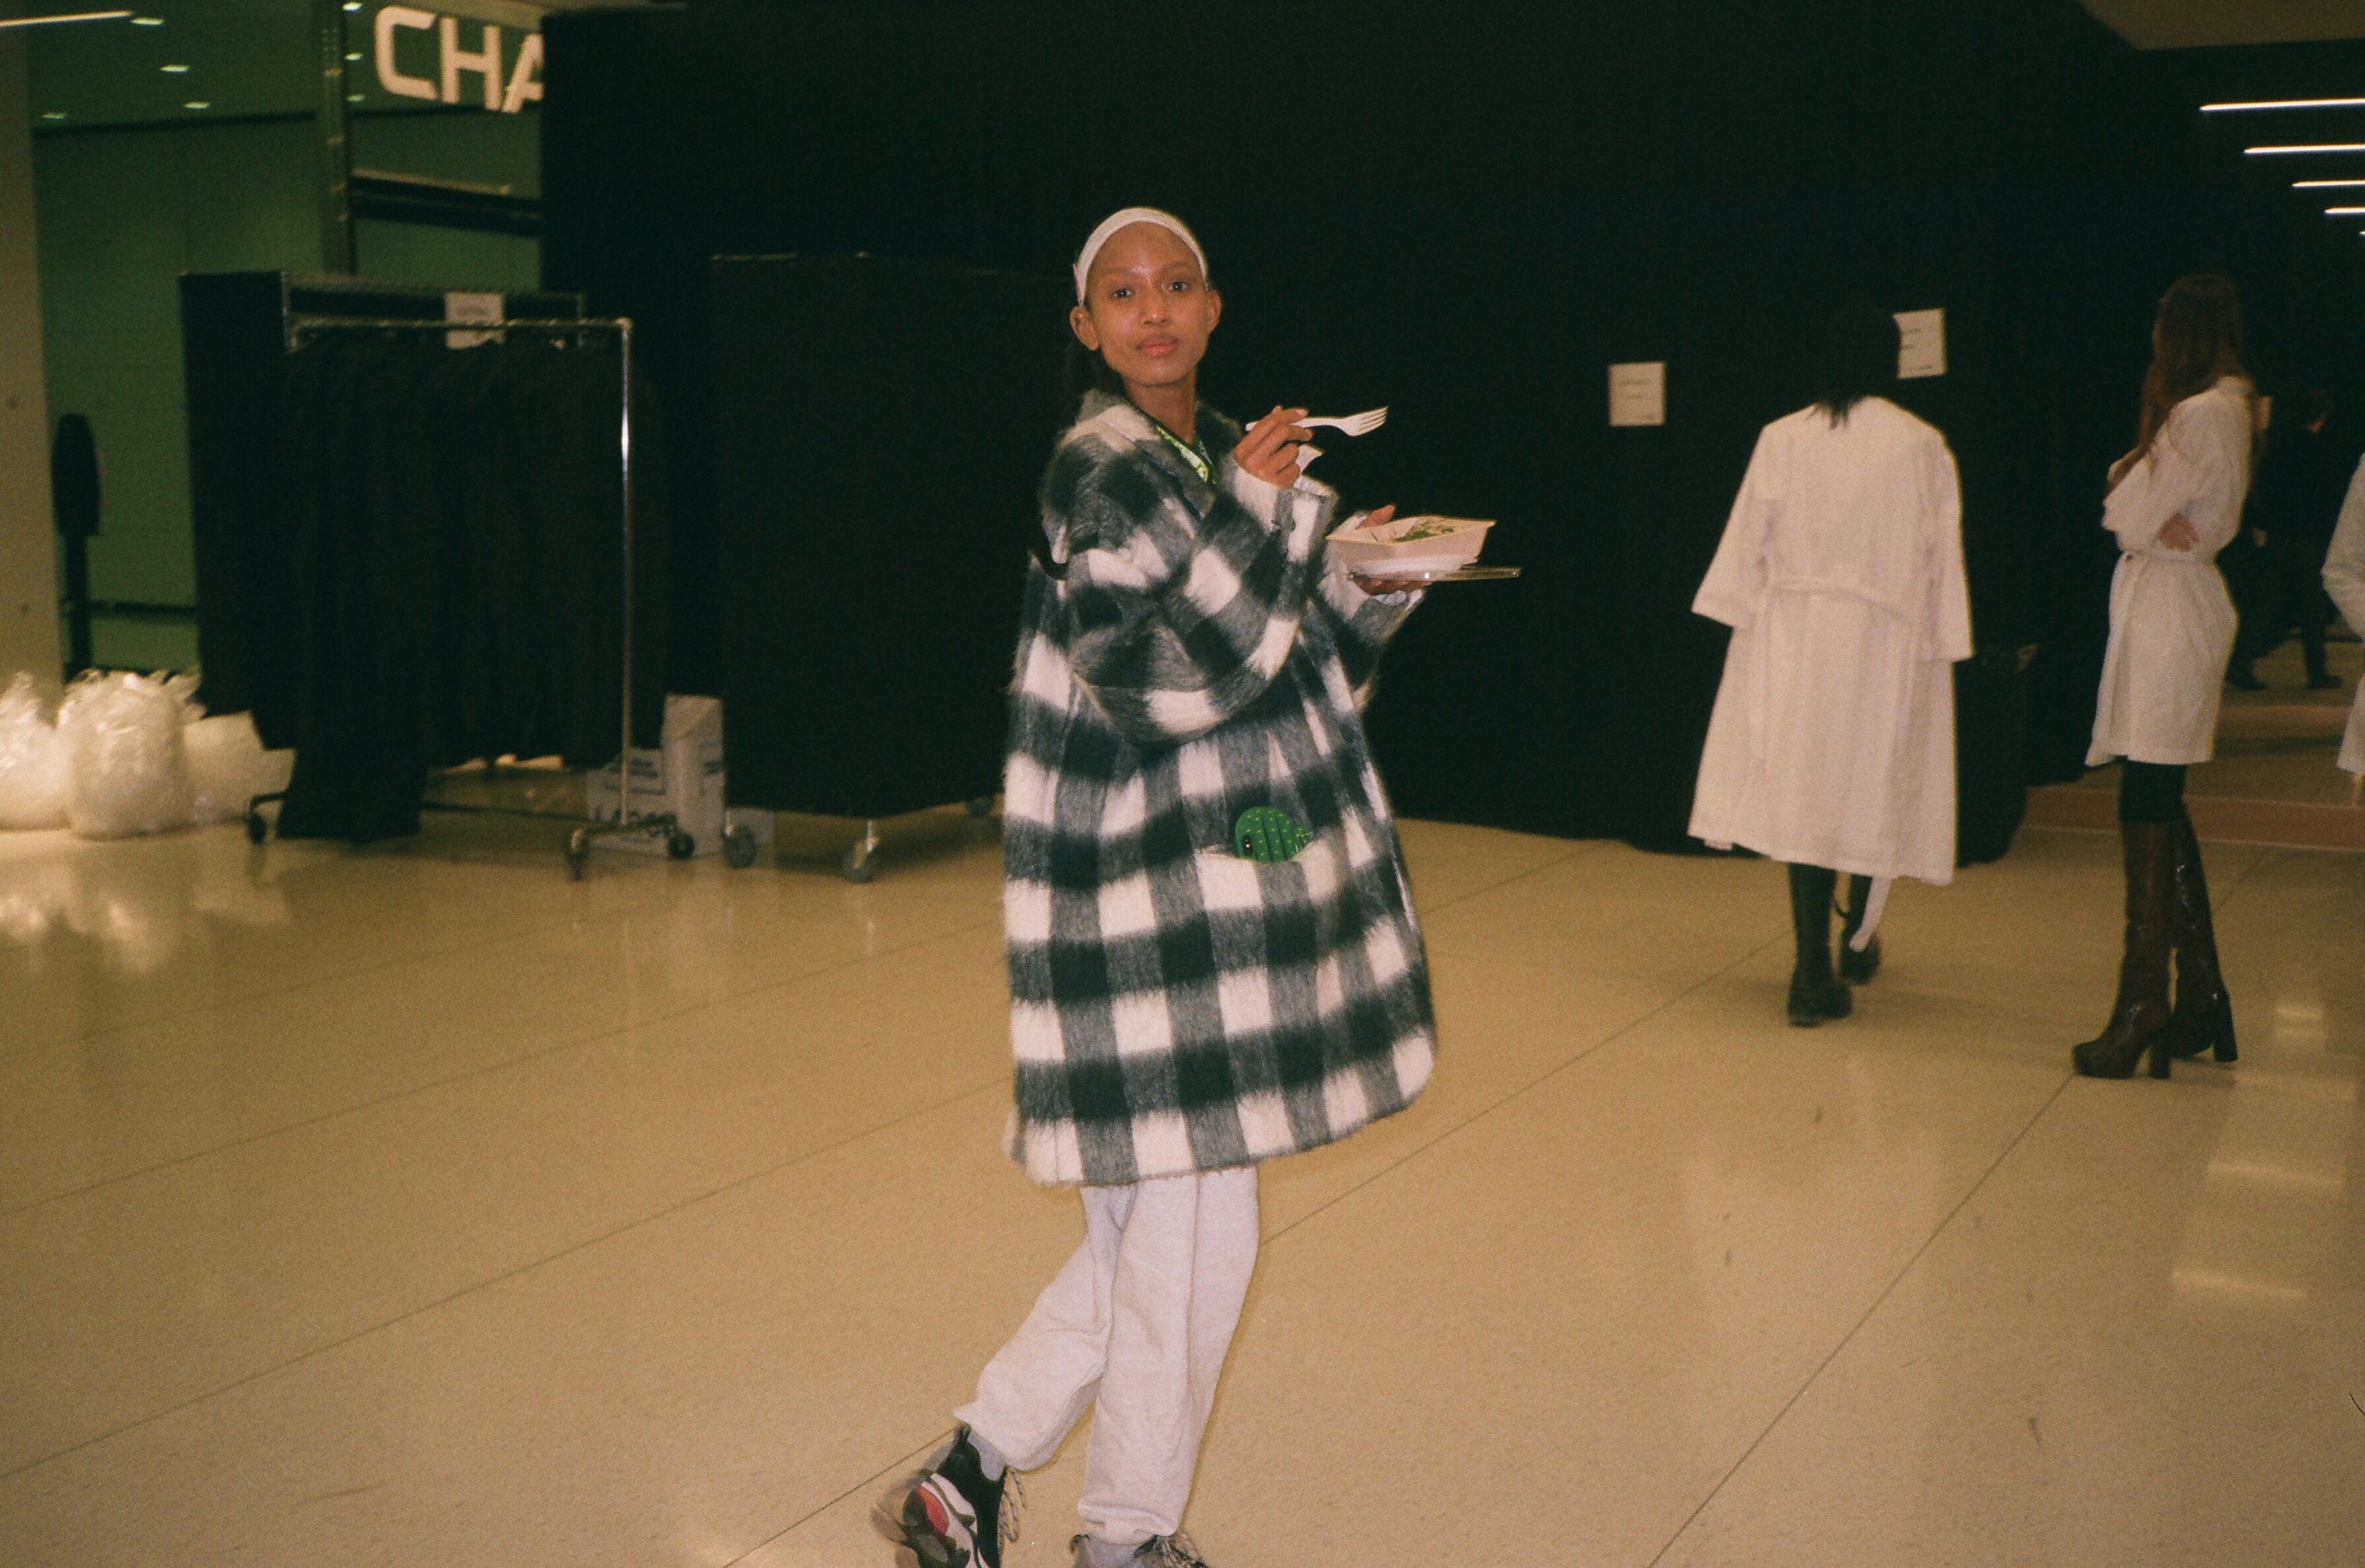 Aighewi quickly eats in between runway walkthroughs and rehearsals.